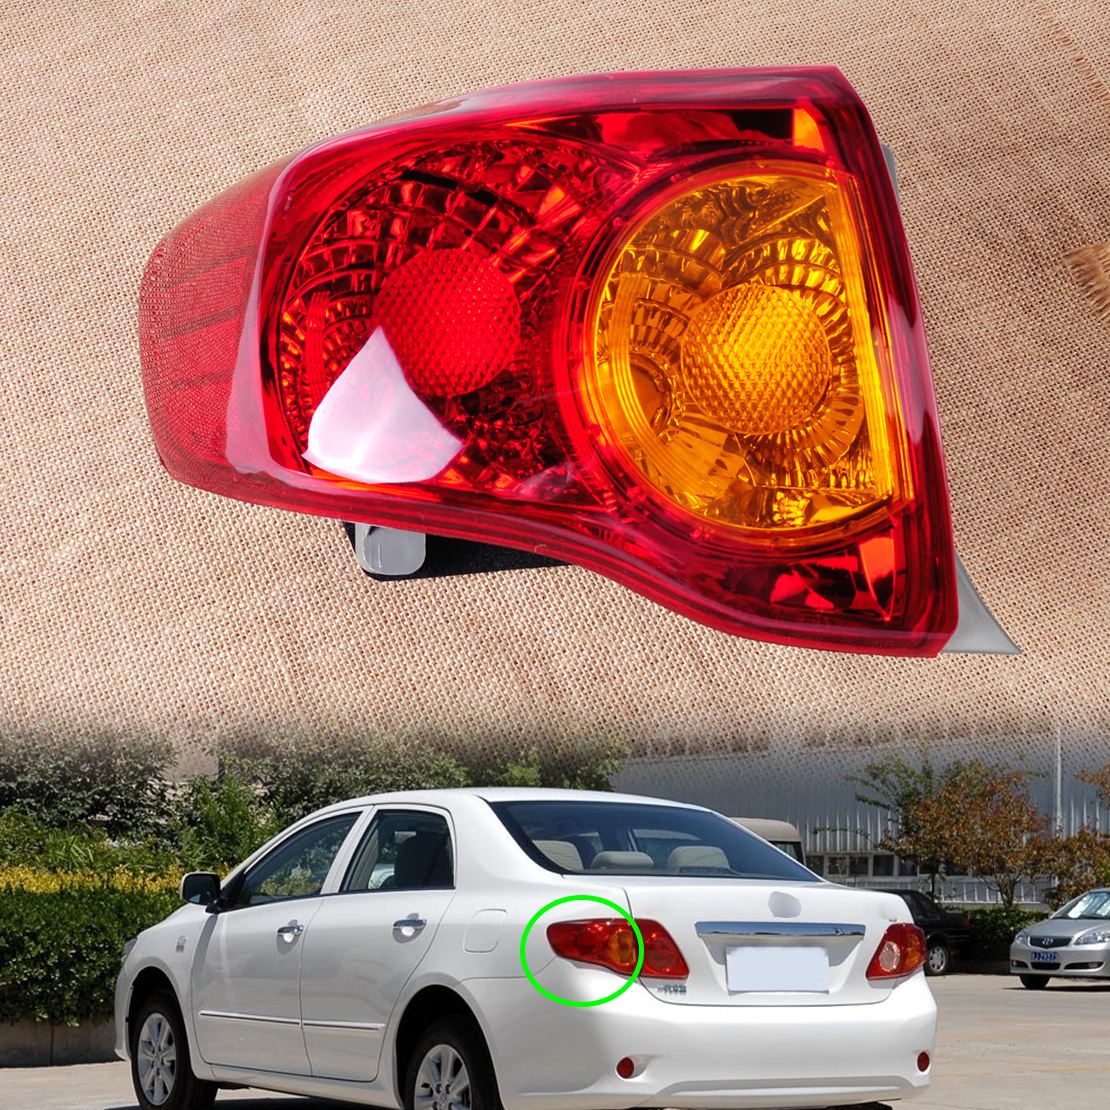 Details About Rear Left Outside Tail Light Taillamp Brake For Toyota Corolla 166 50863l